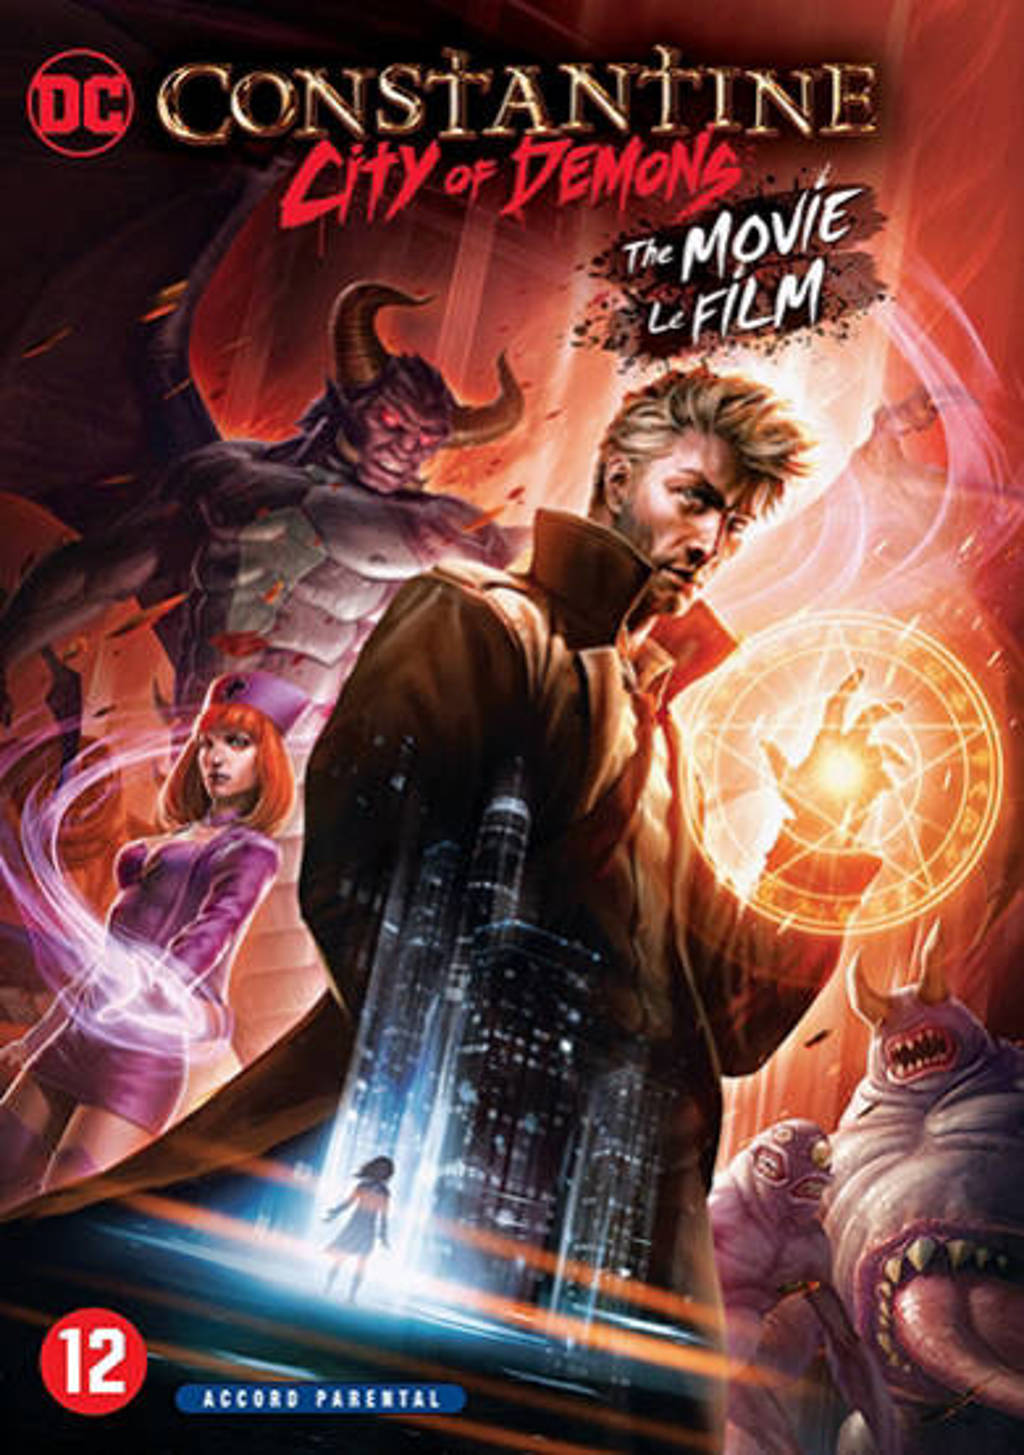 DC Constantine - City of demons (DVD)